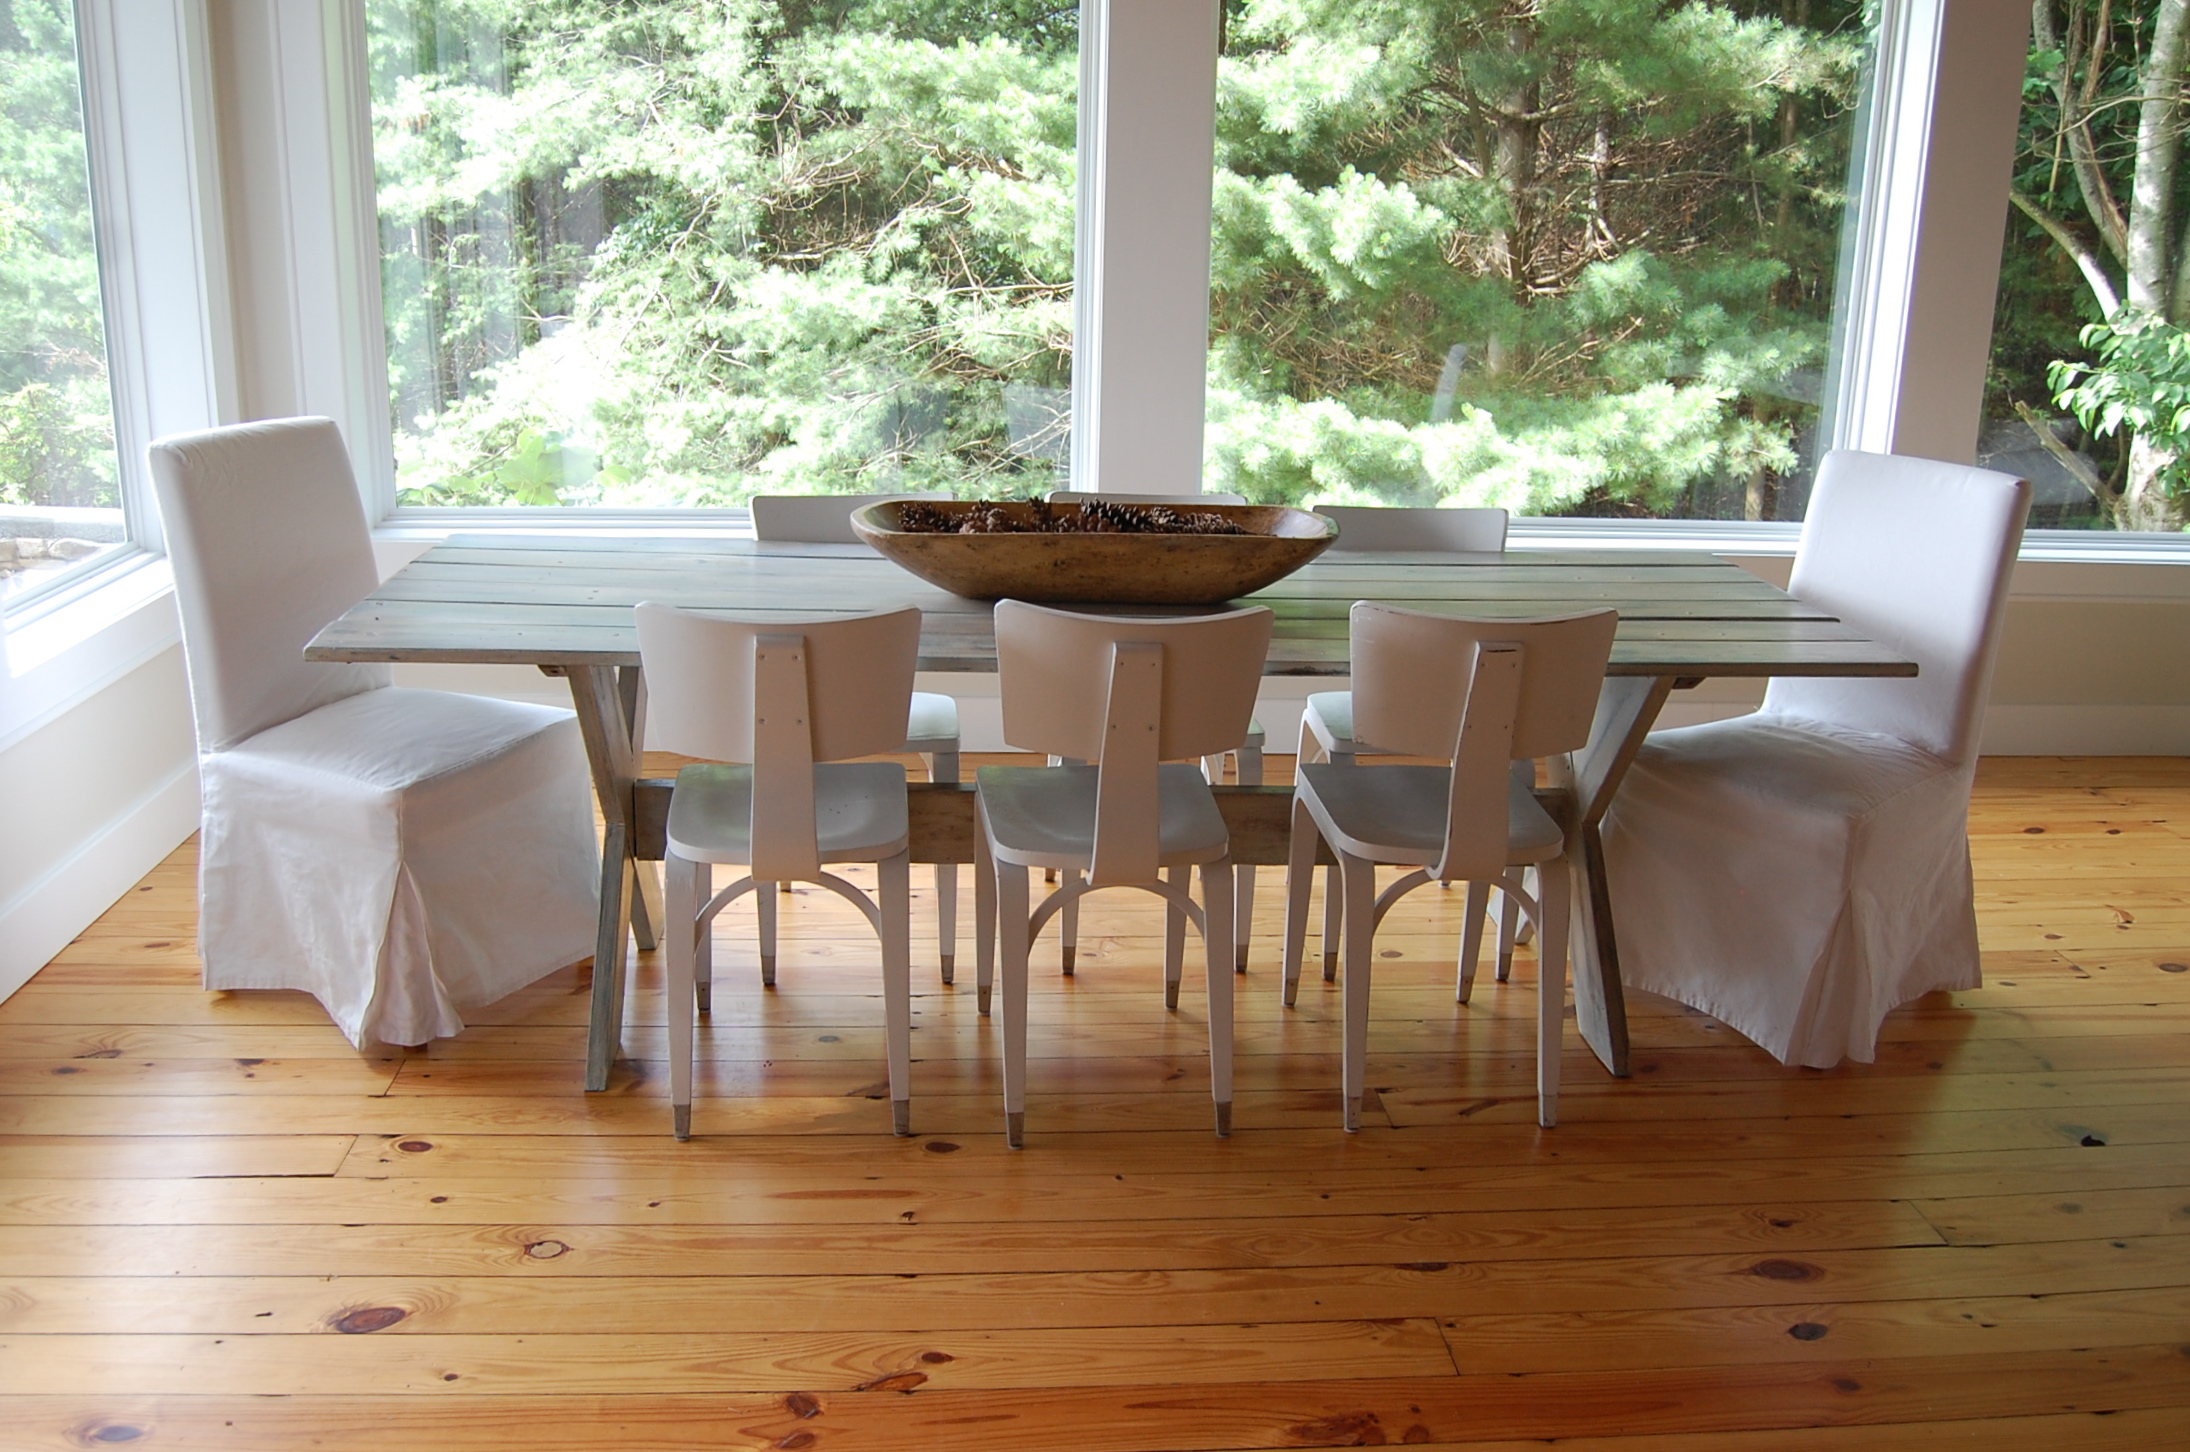 Picnic style dining room